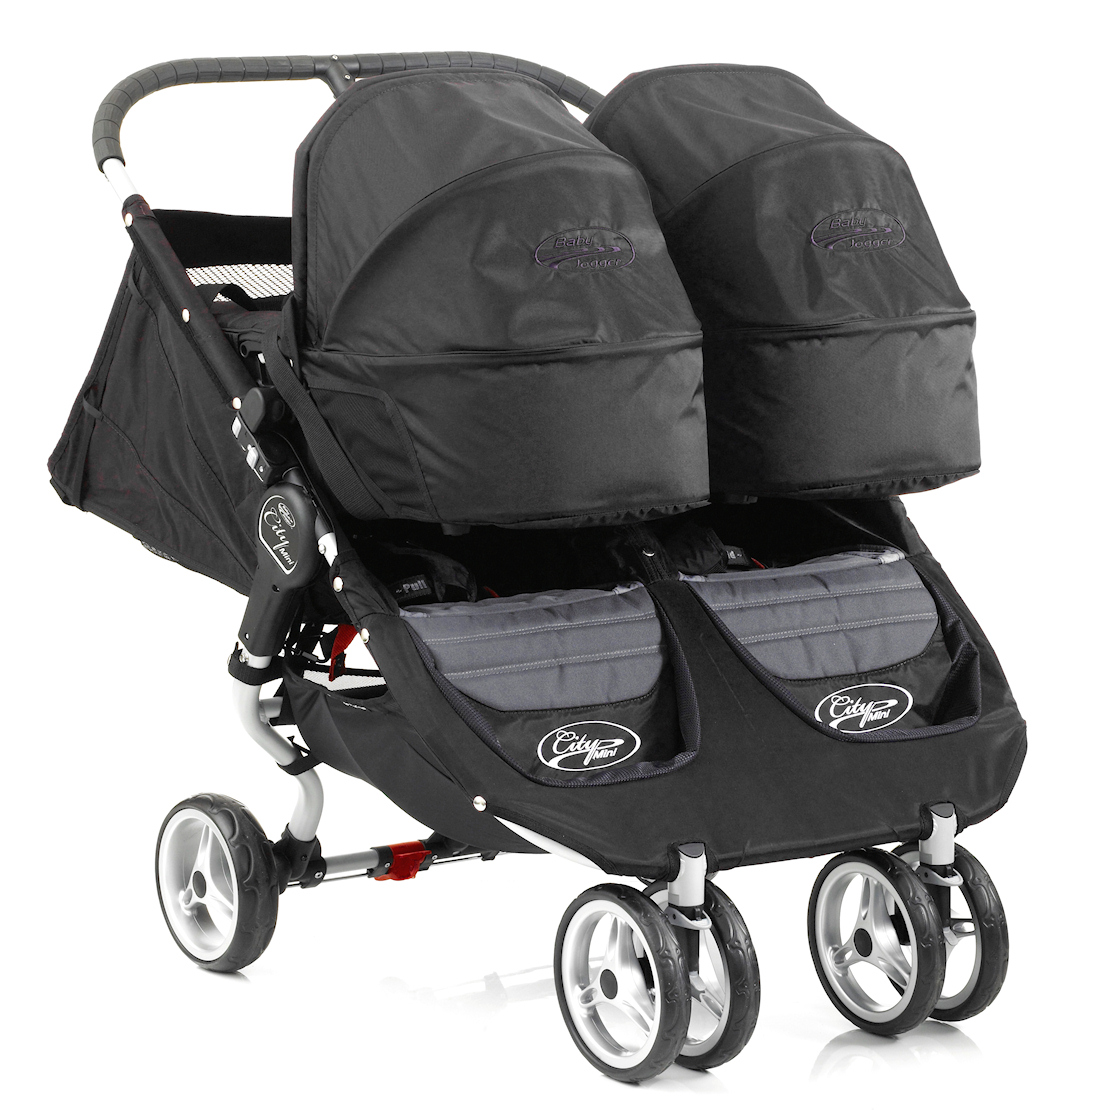 baby jogger city mini gt double pram carrycot raincover buy at online4baby. Black Bedroom Furniture Sets. Home Design Ideas